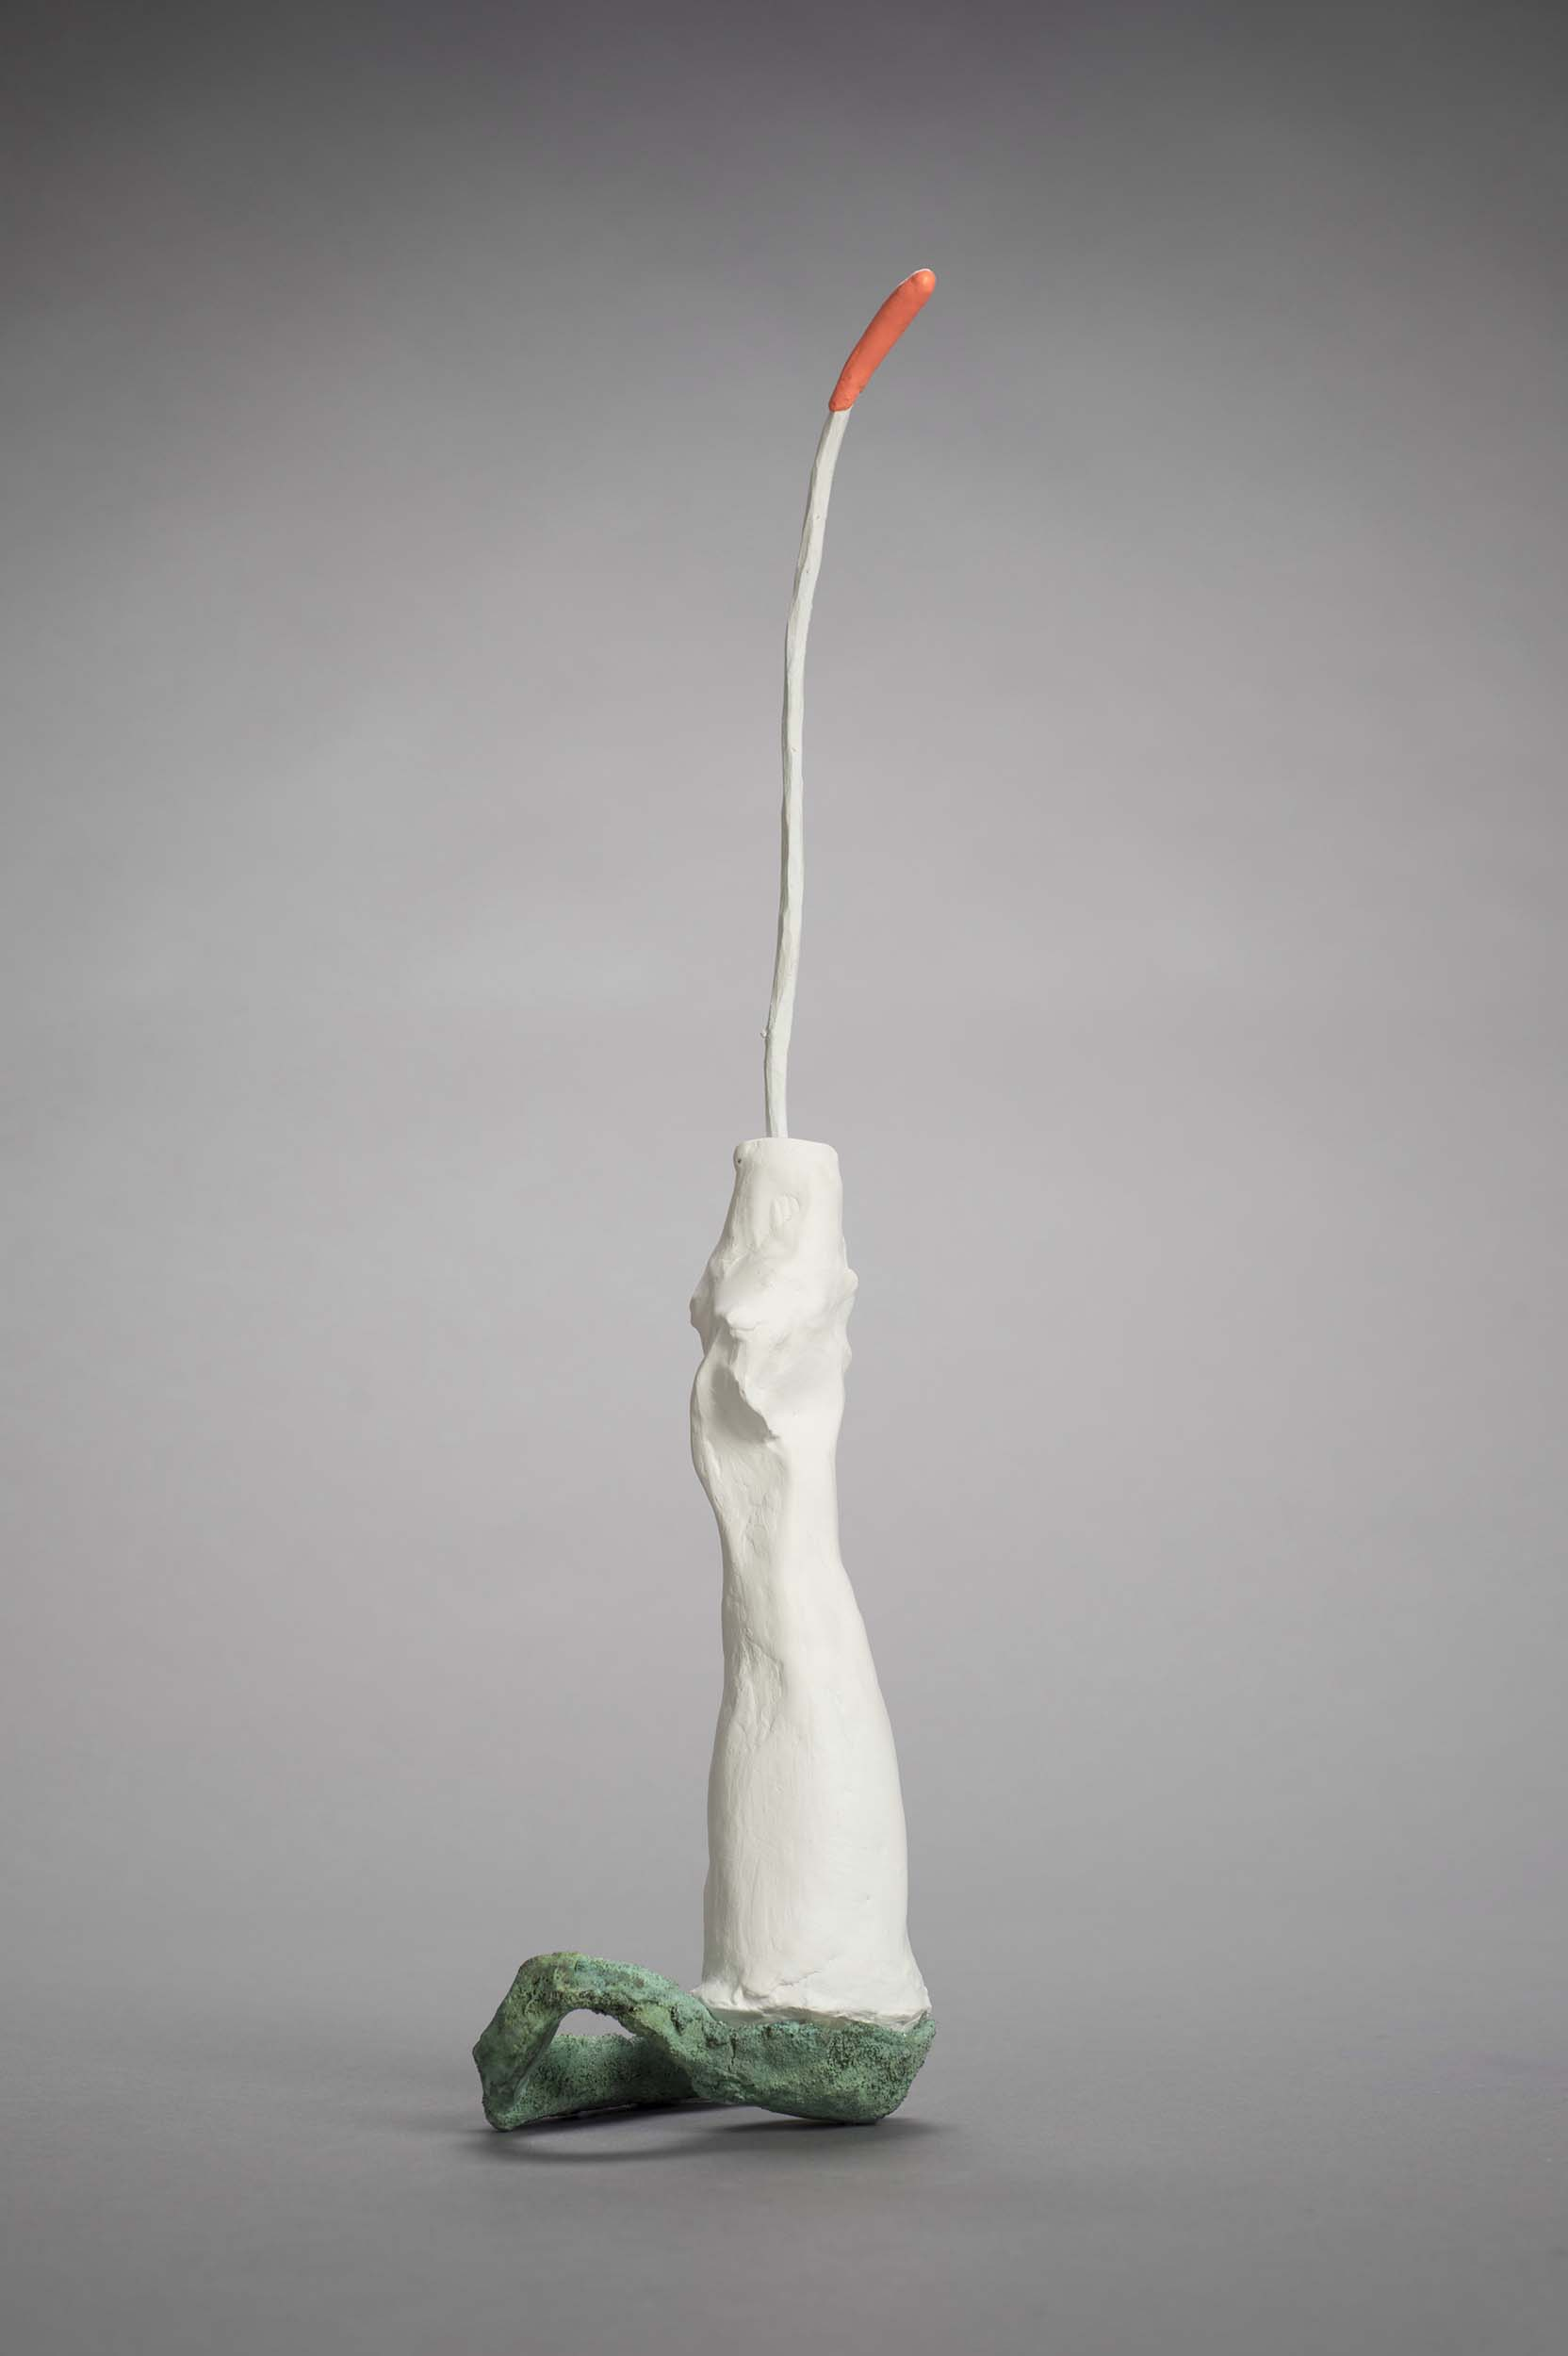 roberley bell, Something #11 bronze, plaster, wood , colored clay 21 x 6 x 5 2017